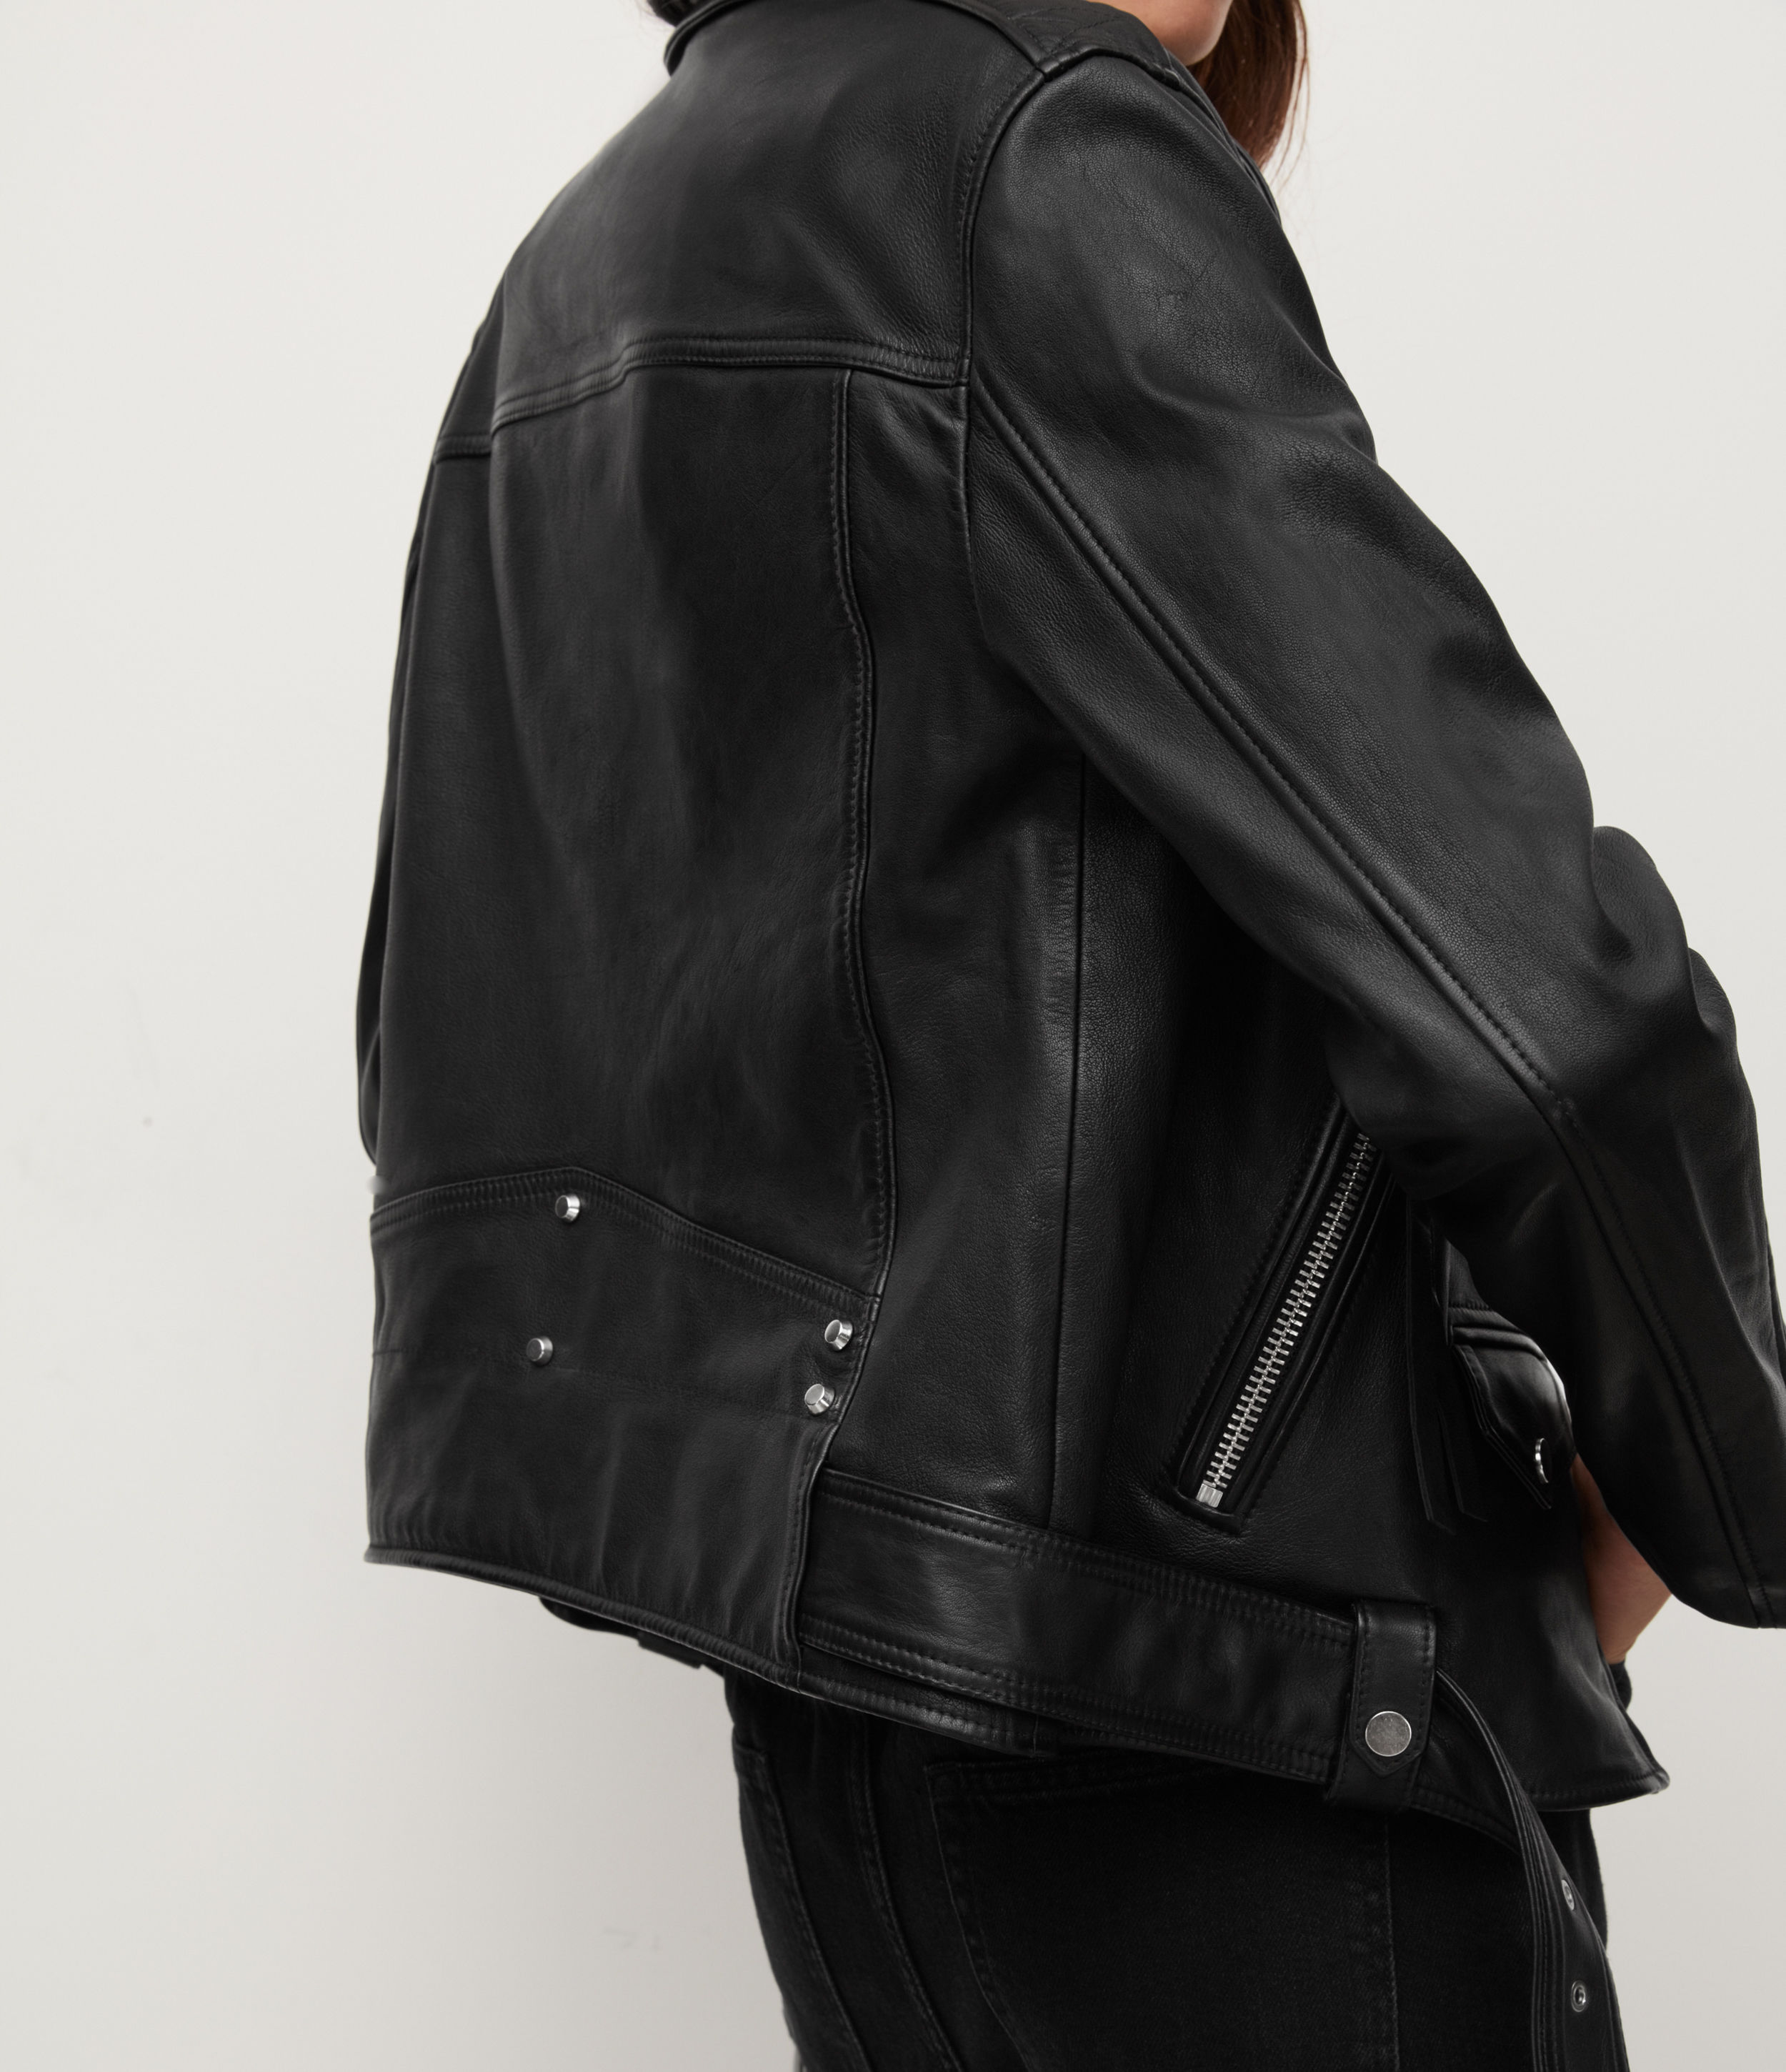 AllSaints Women's Leather Luna Biker Jacket, Black, Size: M